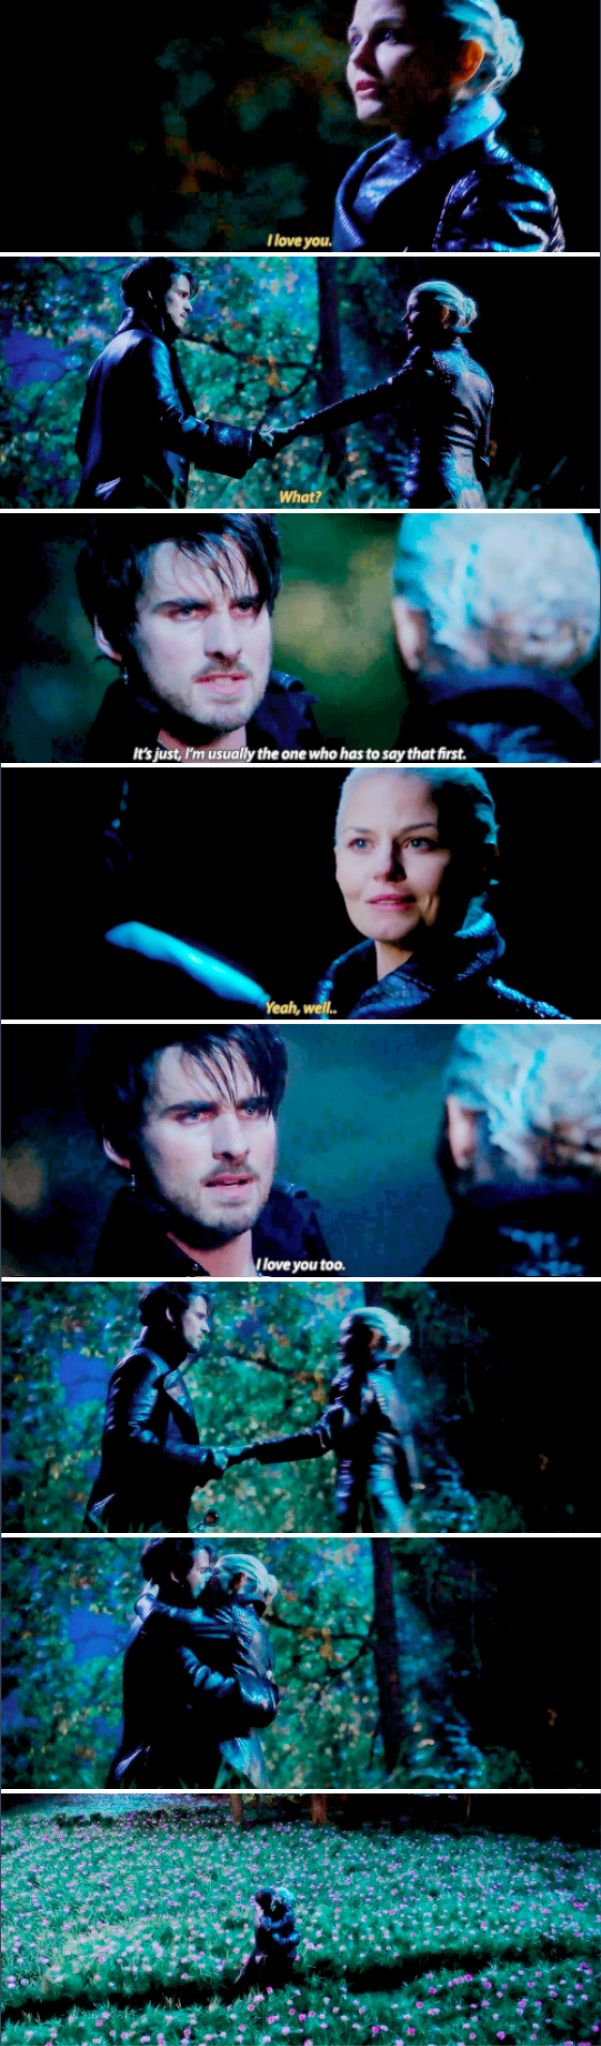 """""""I'm usually the one who has to say that first"""" - Dark Hook and Dark Swan #OnceUponATime"""